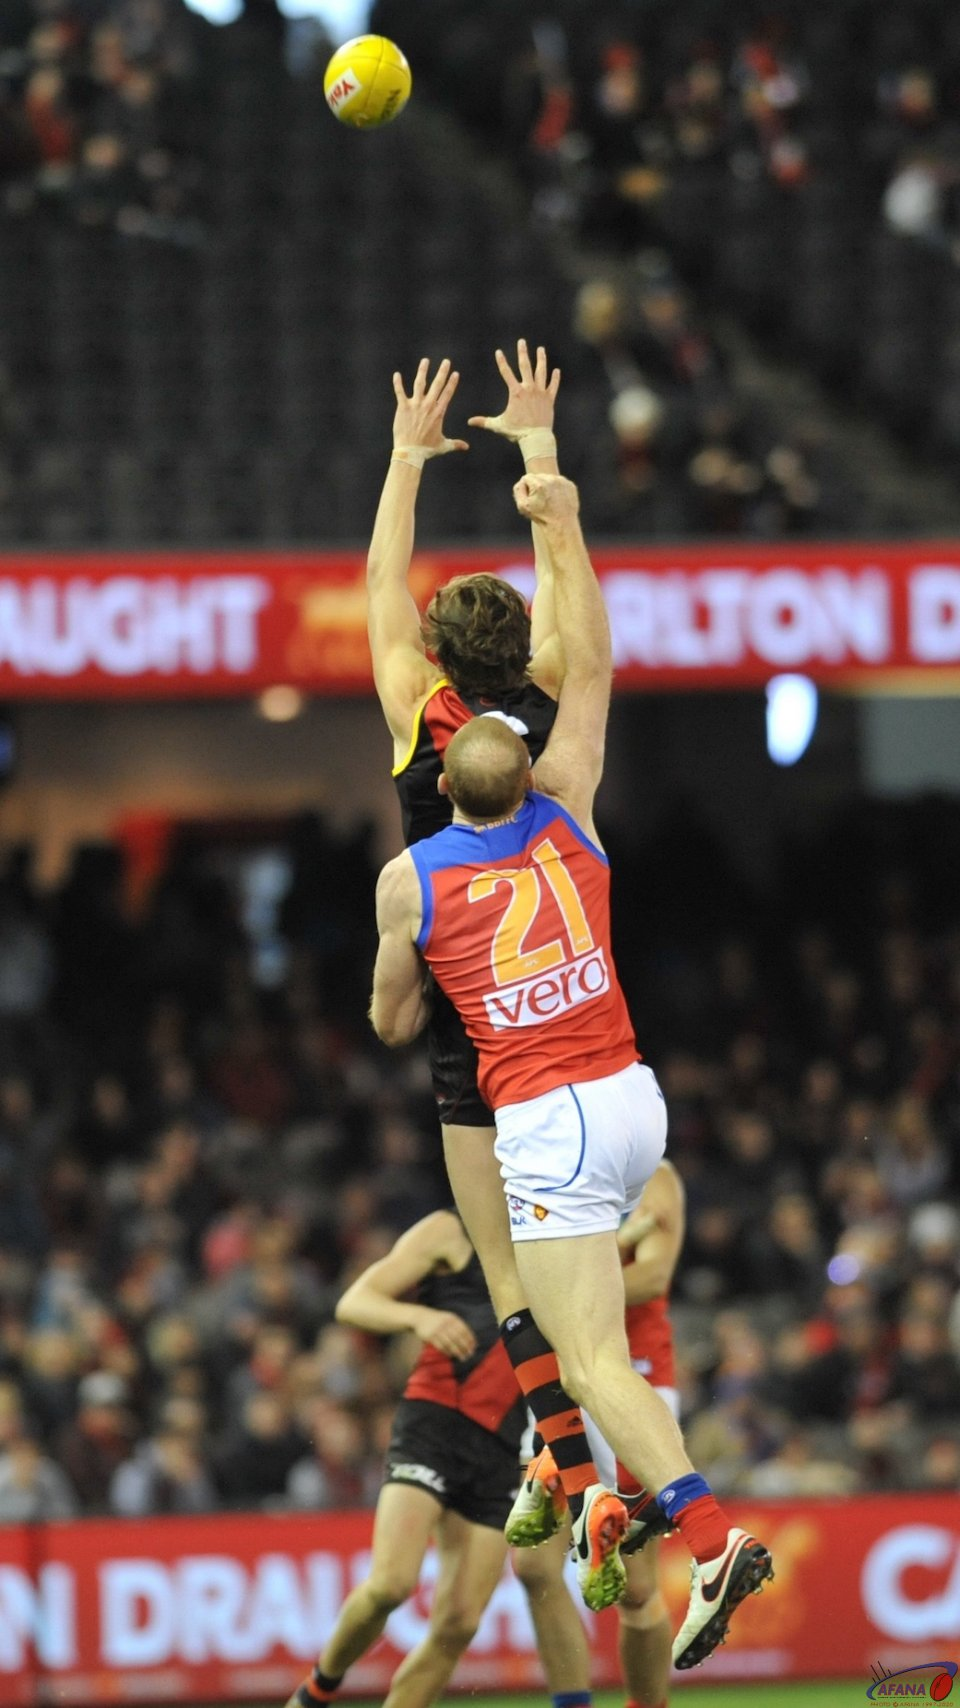 Merrett and Daniher areial duel continued all day